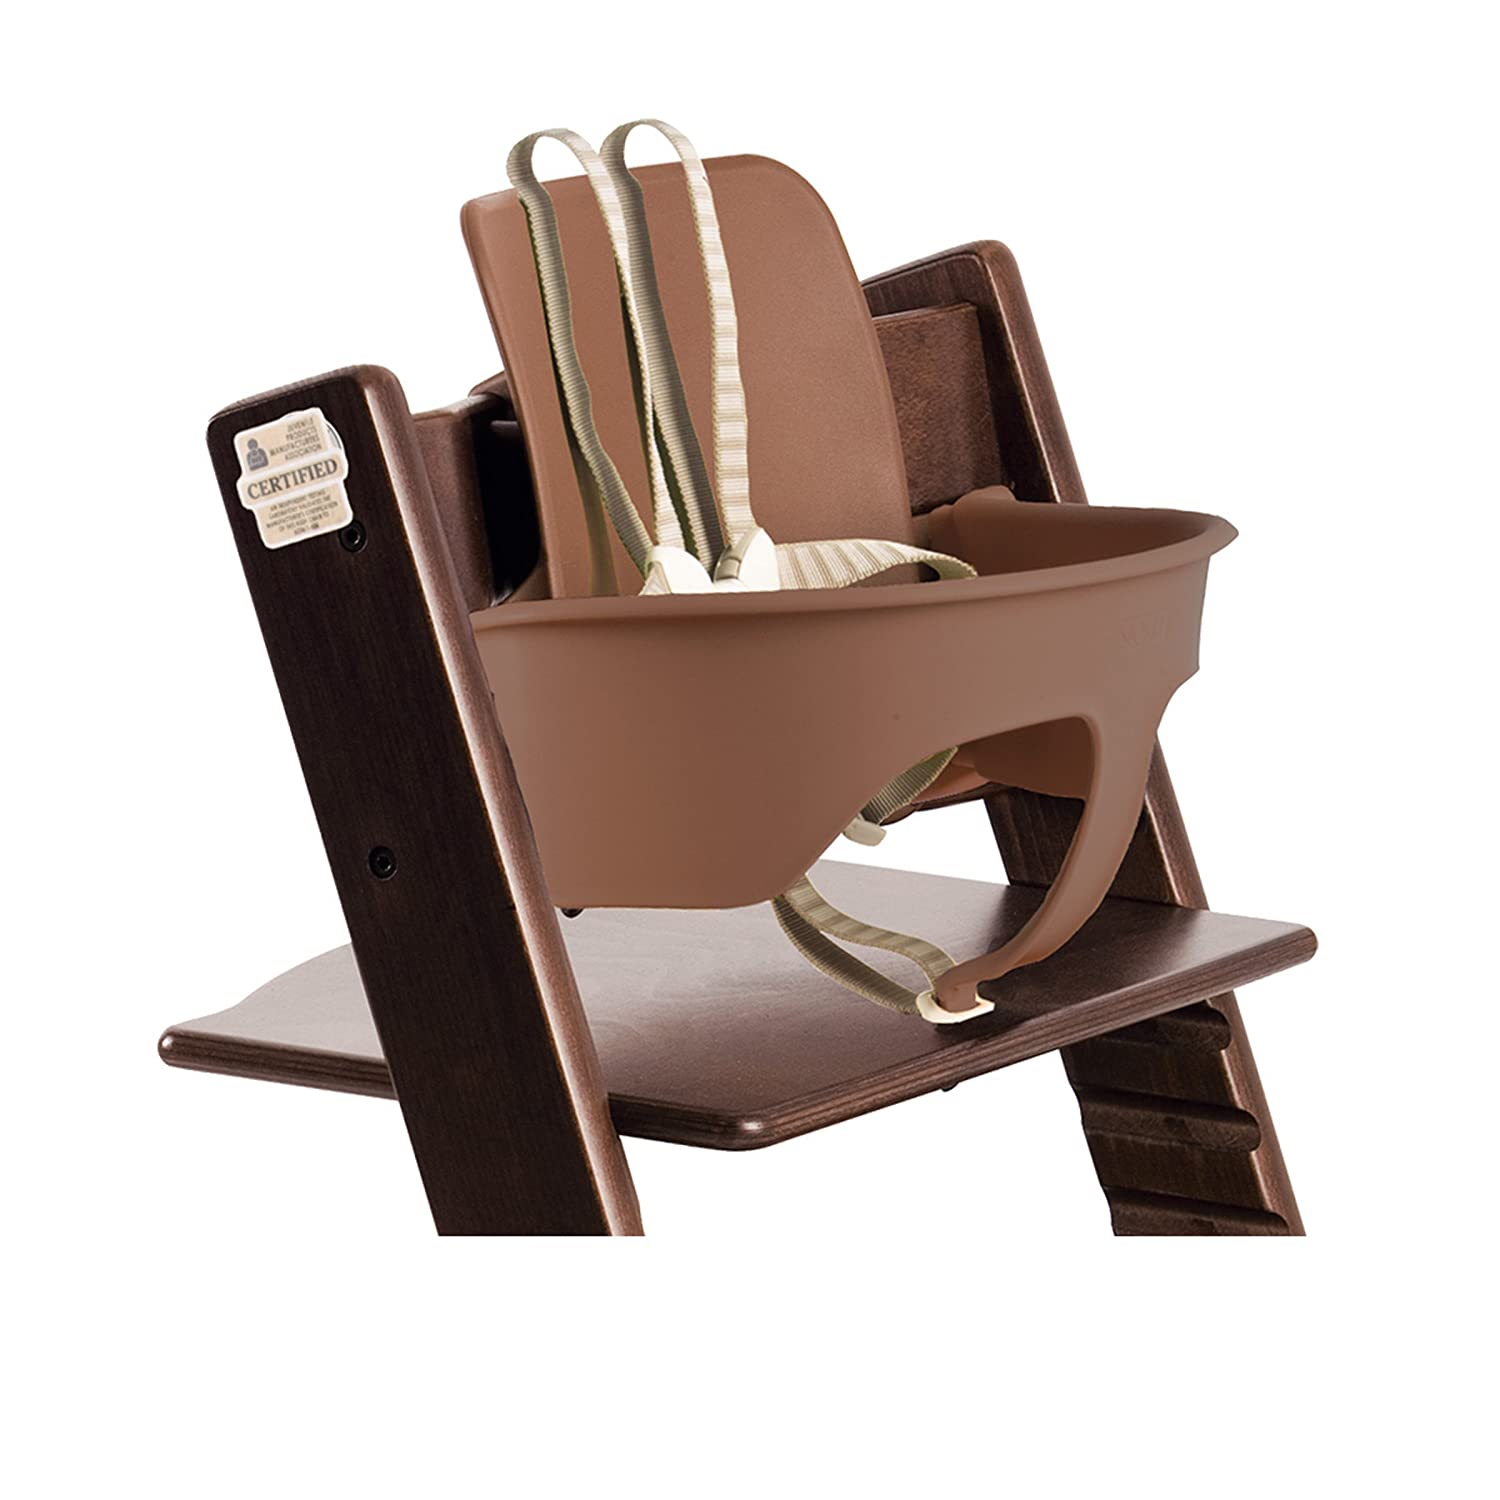 Superior Amazon.com: Stokke Tripp Trapp Chair Baby Set, Walnut Brown: Raichel: Baby